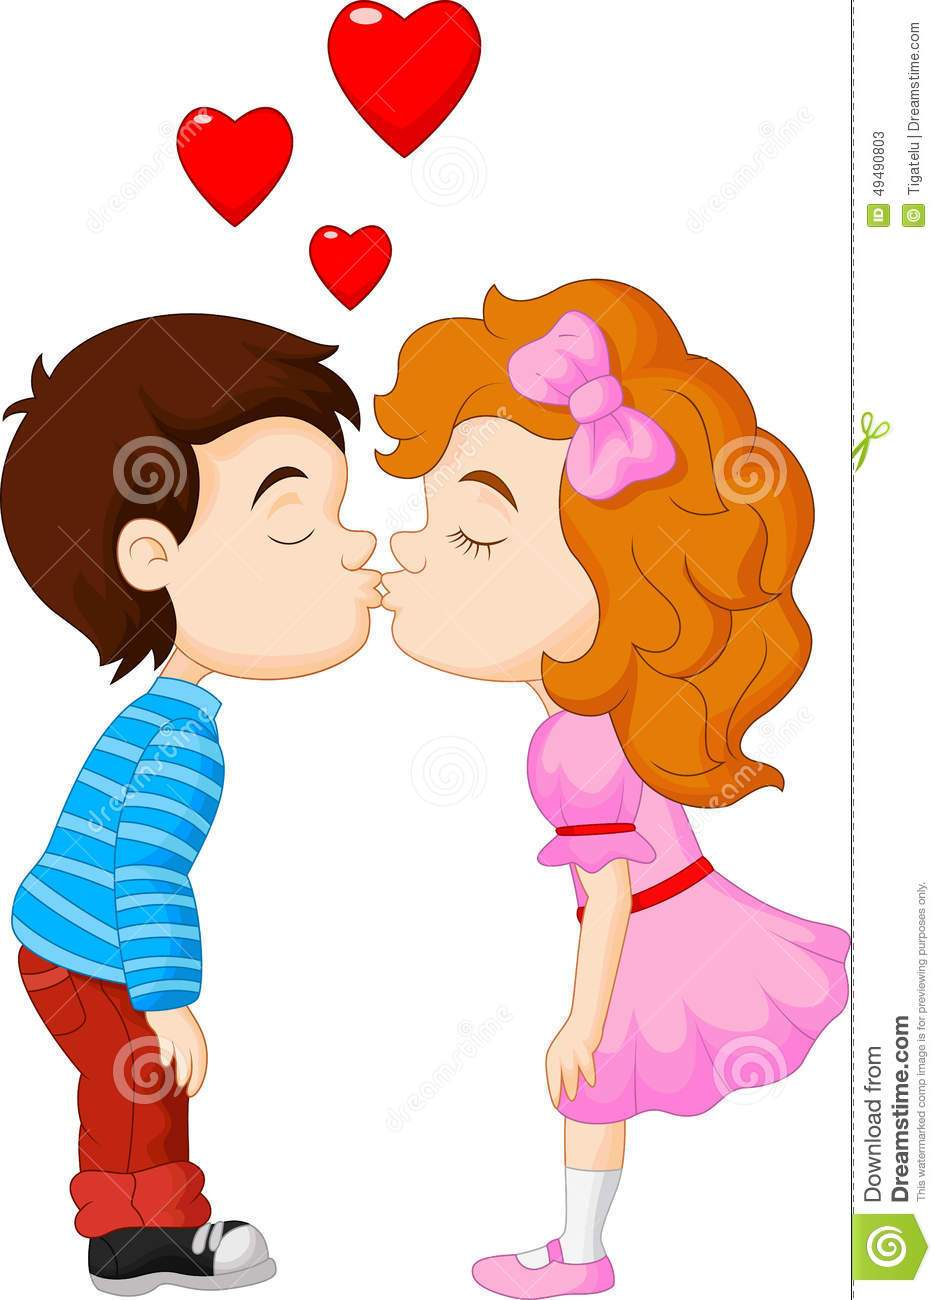 Kissing clipart jpg free Boy and girl kissing clipart 8 » Clipart Portal jpg free